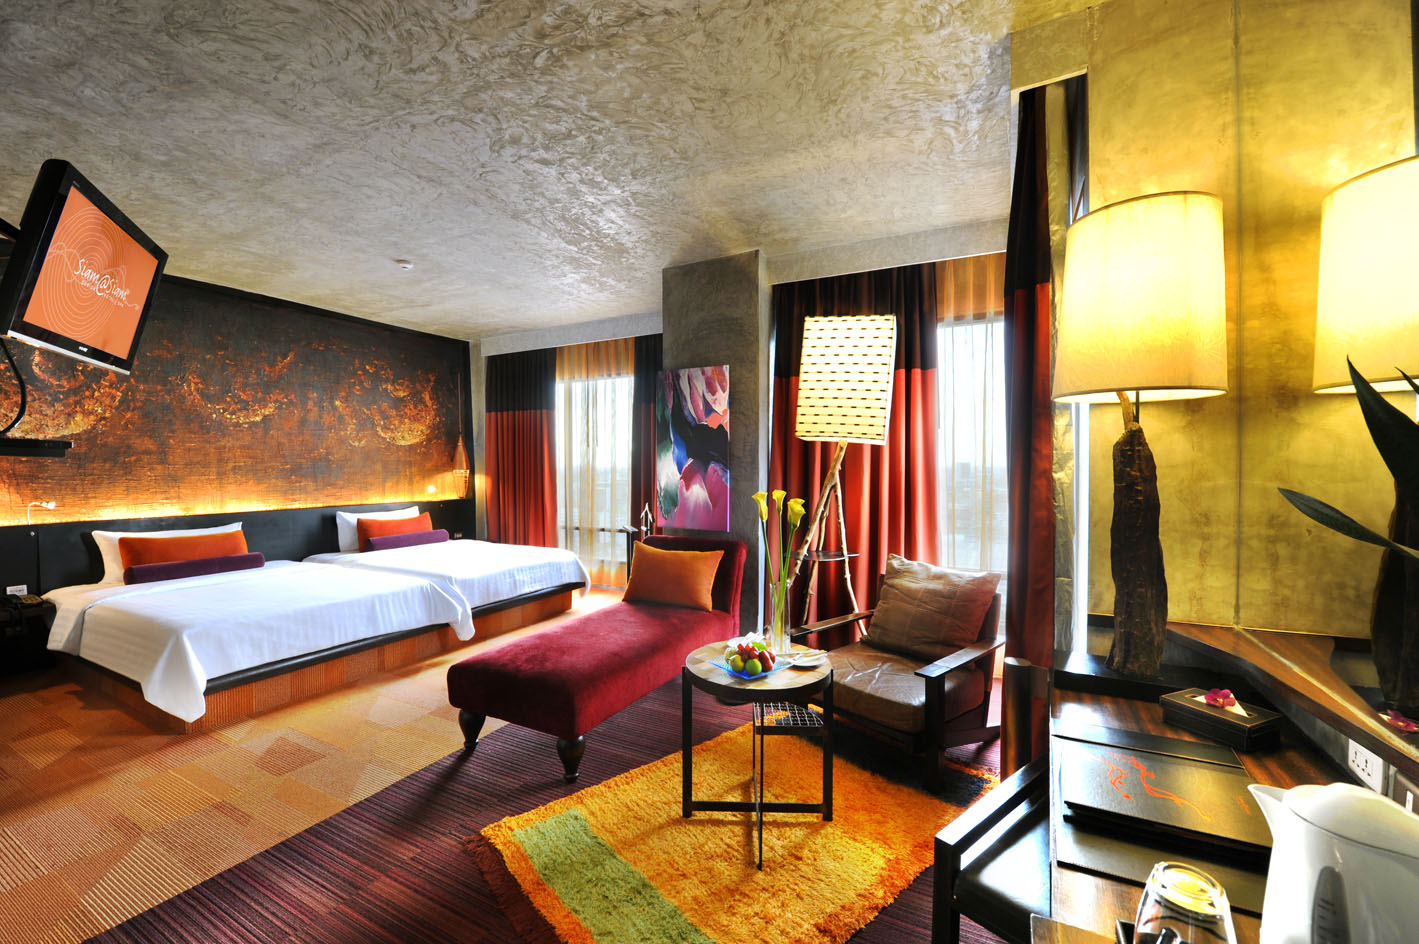 Siam siam expands to pattaya absolute thai for Design hotel pattaya